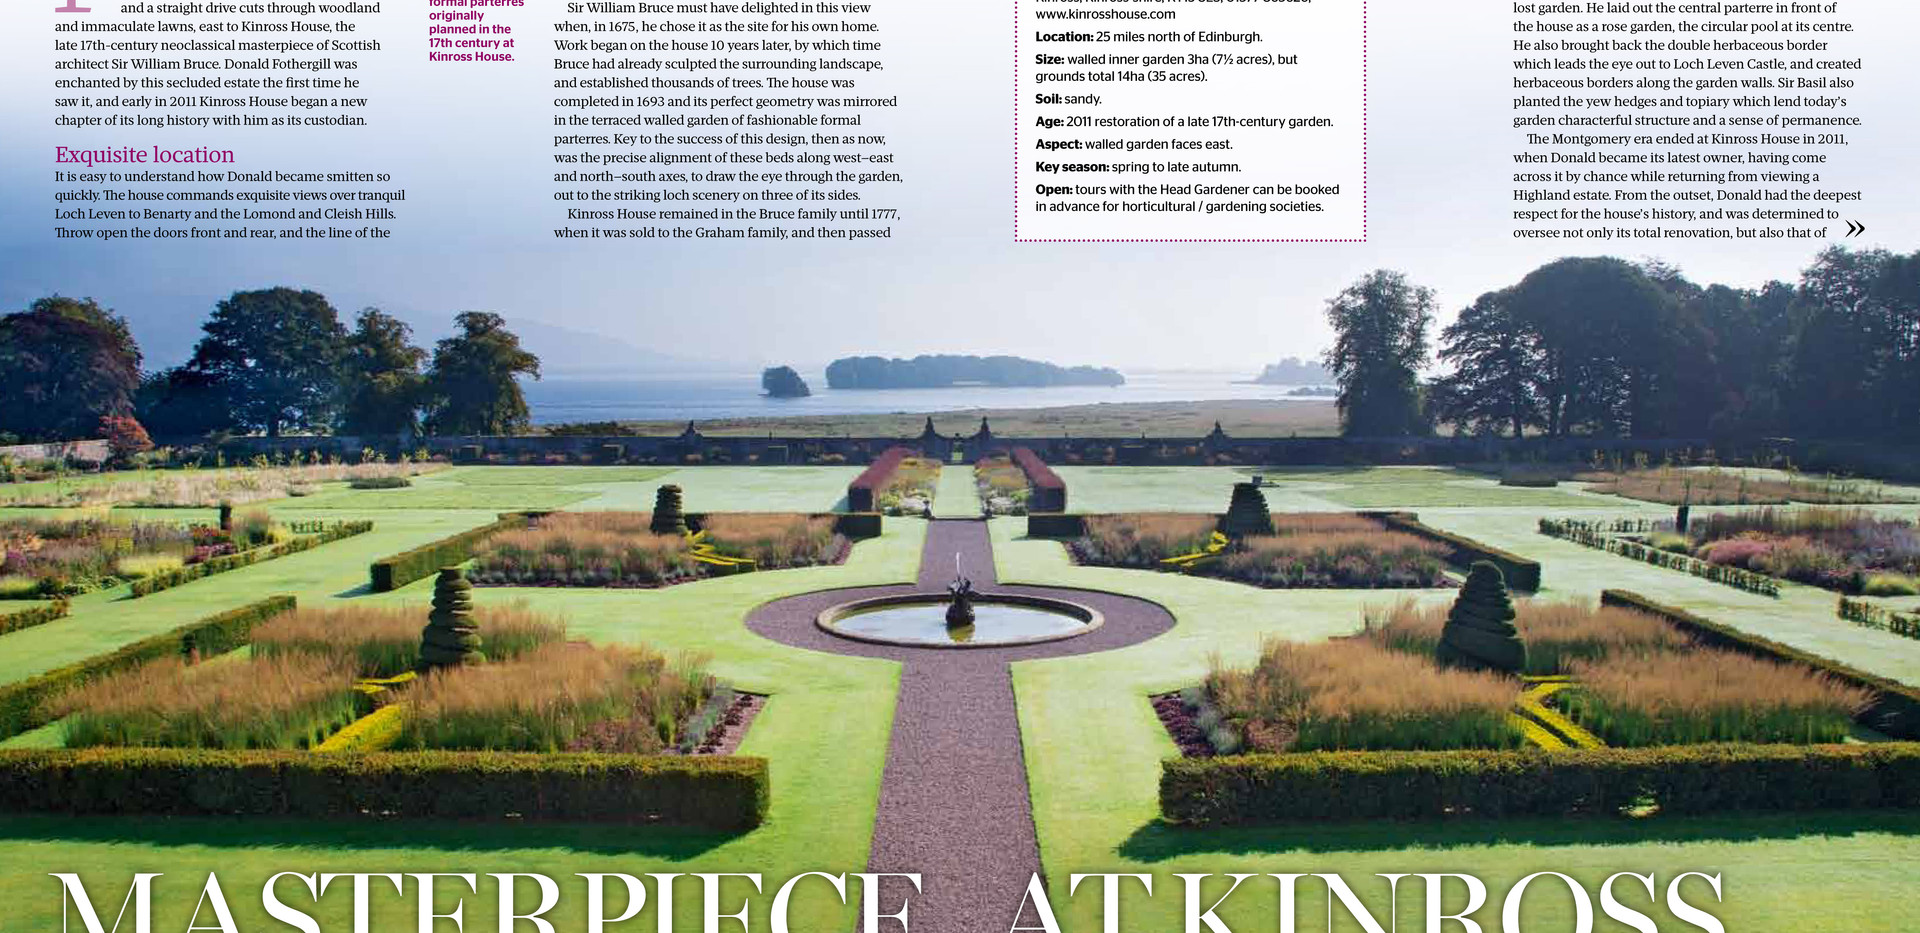 Kinross House Gardens, designed by Alistair Baldwin, The Garden, RHS Magazine September 2016, Page 1